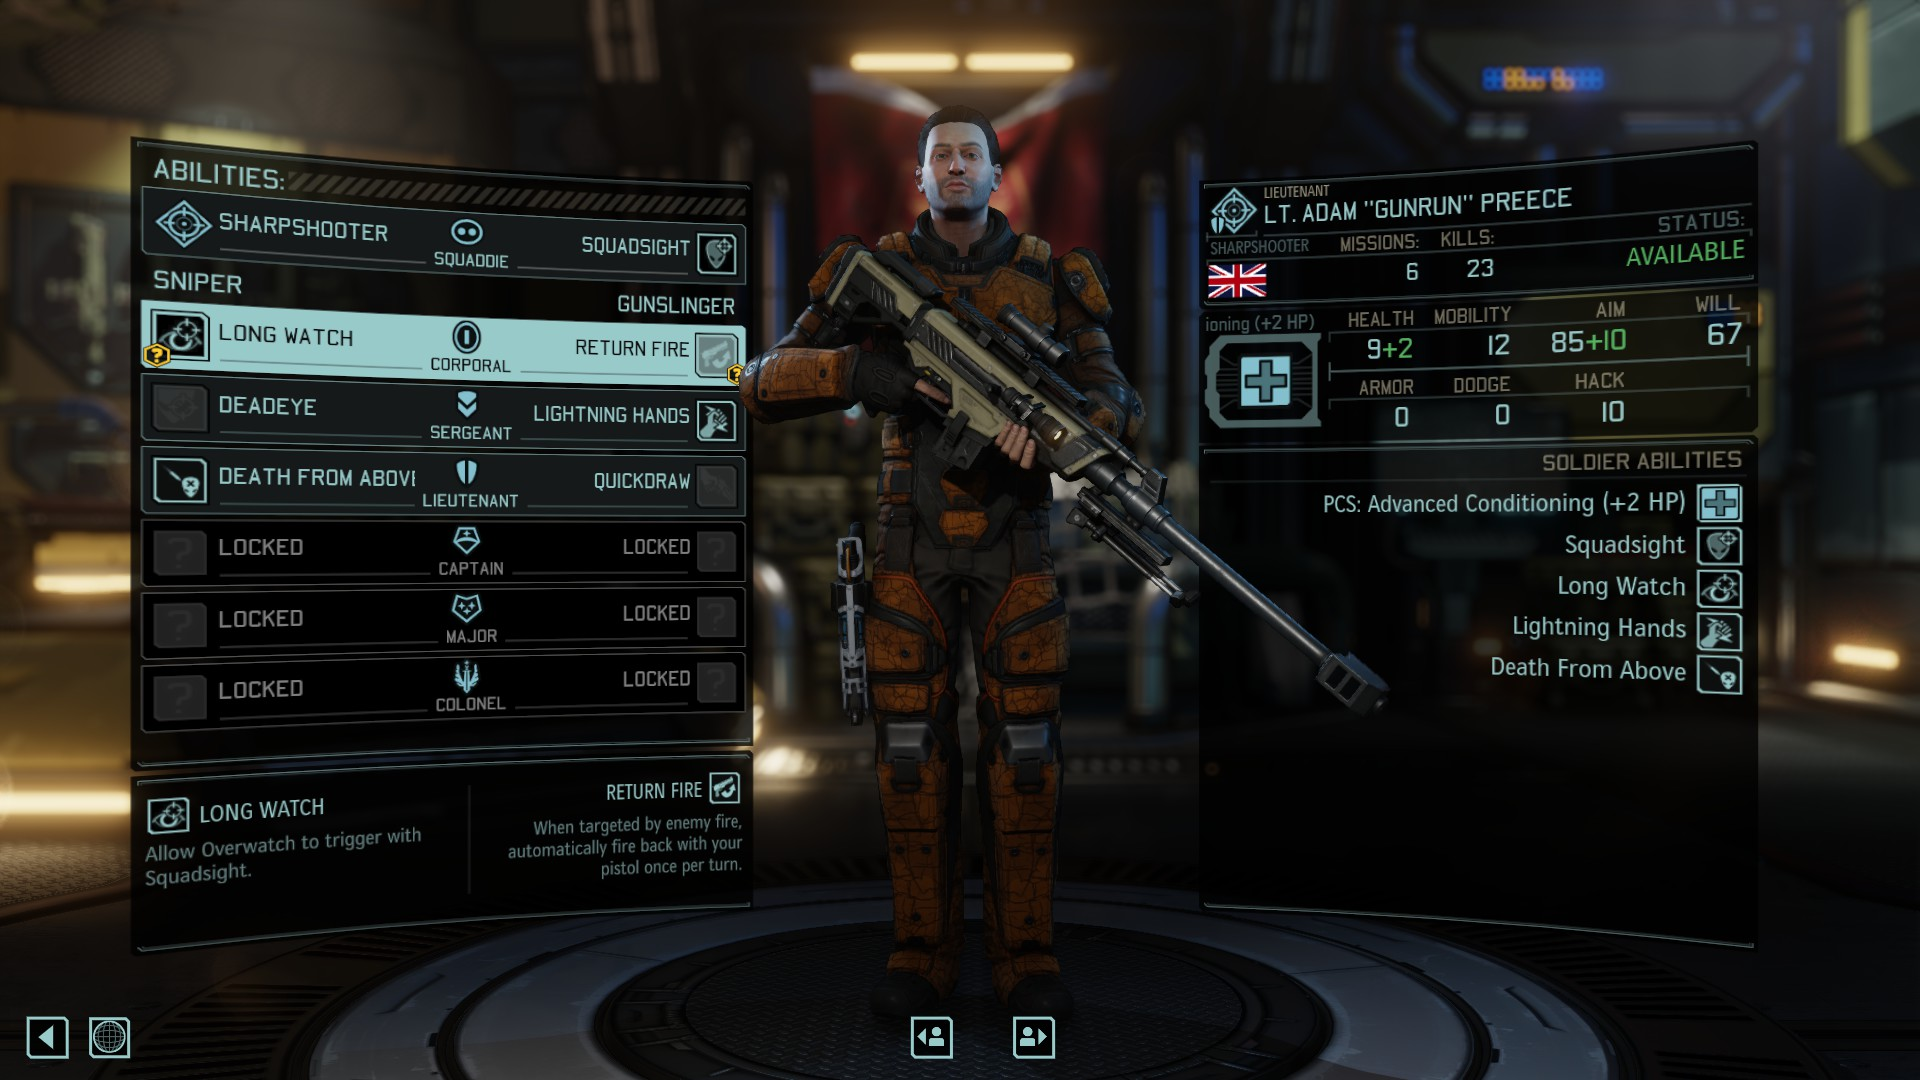 XCOM 2 guide: the best autopsies, abilities and gear - VG247